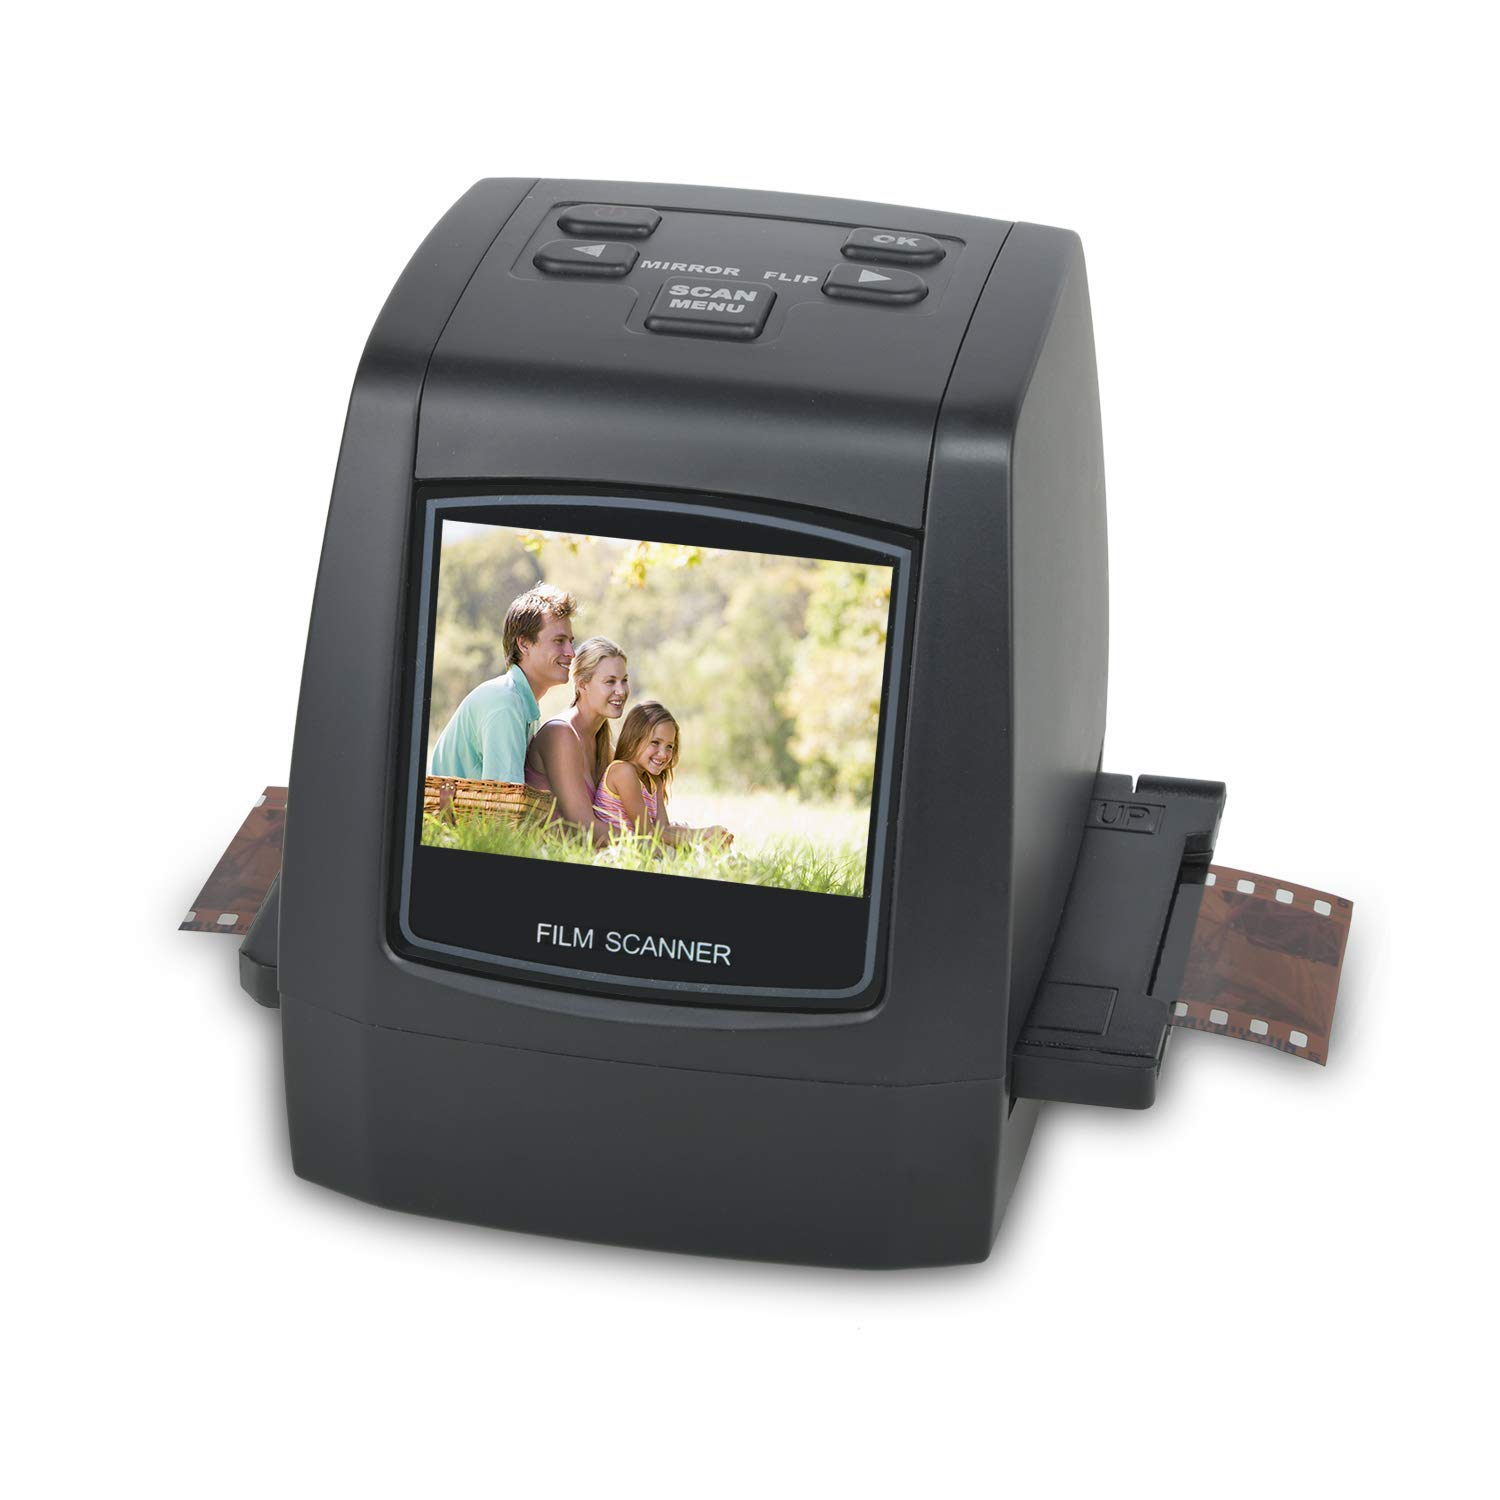 DIGITNOW 22MP All-in-1 Film & Slide Scanner, Converts 35mm 135 110 126 and Super 8 Films/Slides/Negatives to Digital JPG Photos, Built-in 128MB Memory, 2.4 LCD Screen by DIGITNOW